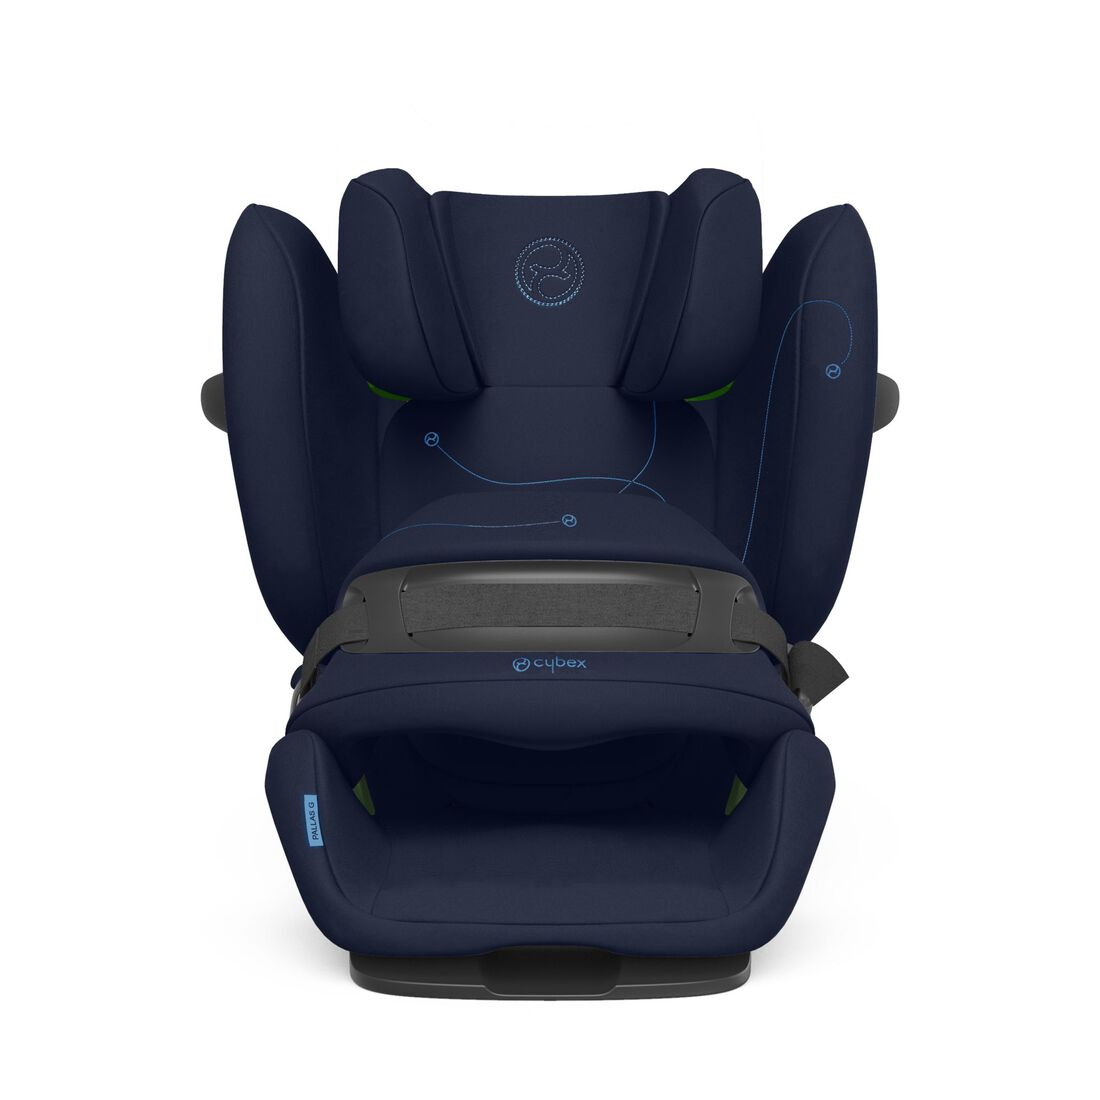 CYBEX Pallas G i-Size - Navy Blue in Navy Blue large image number 2